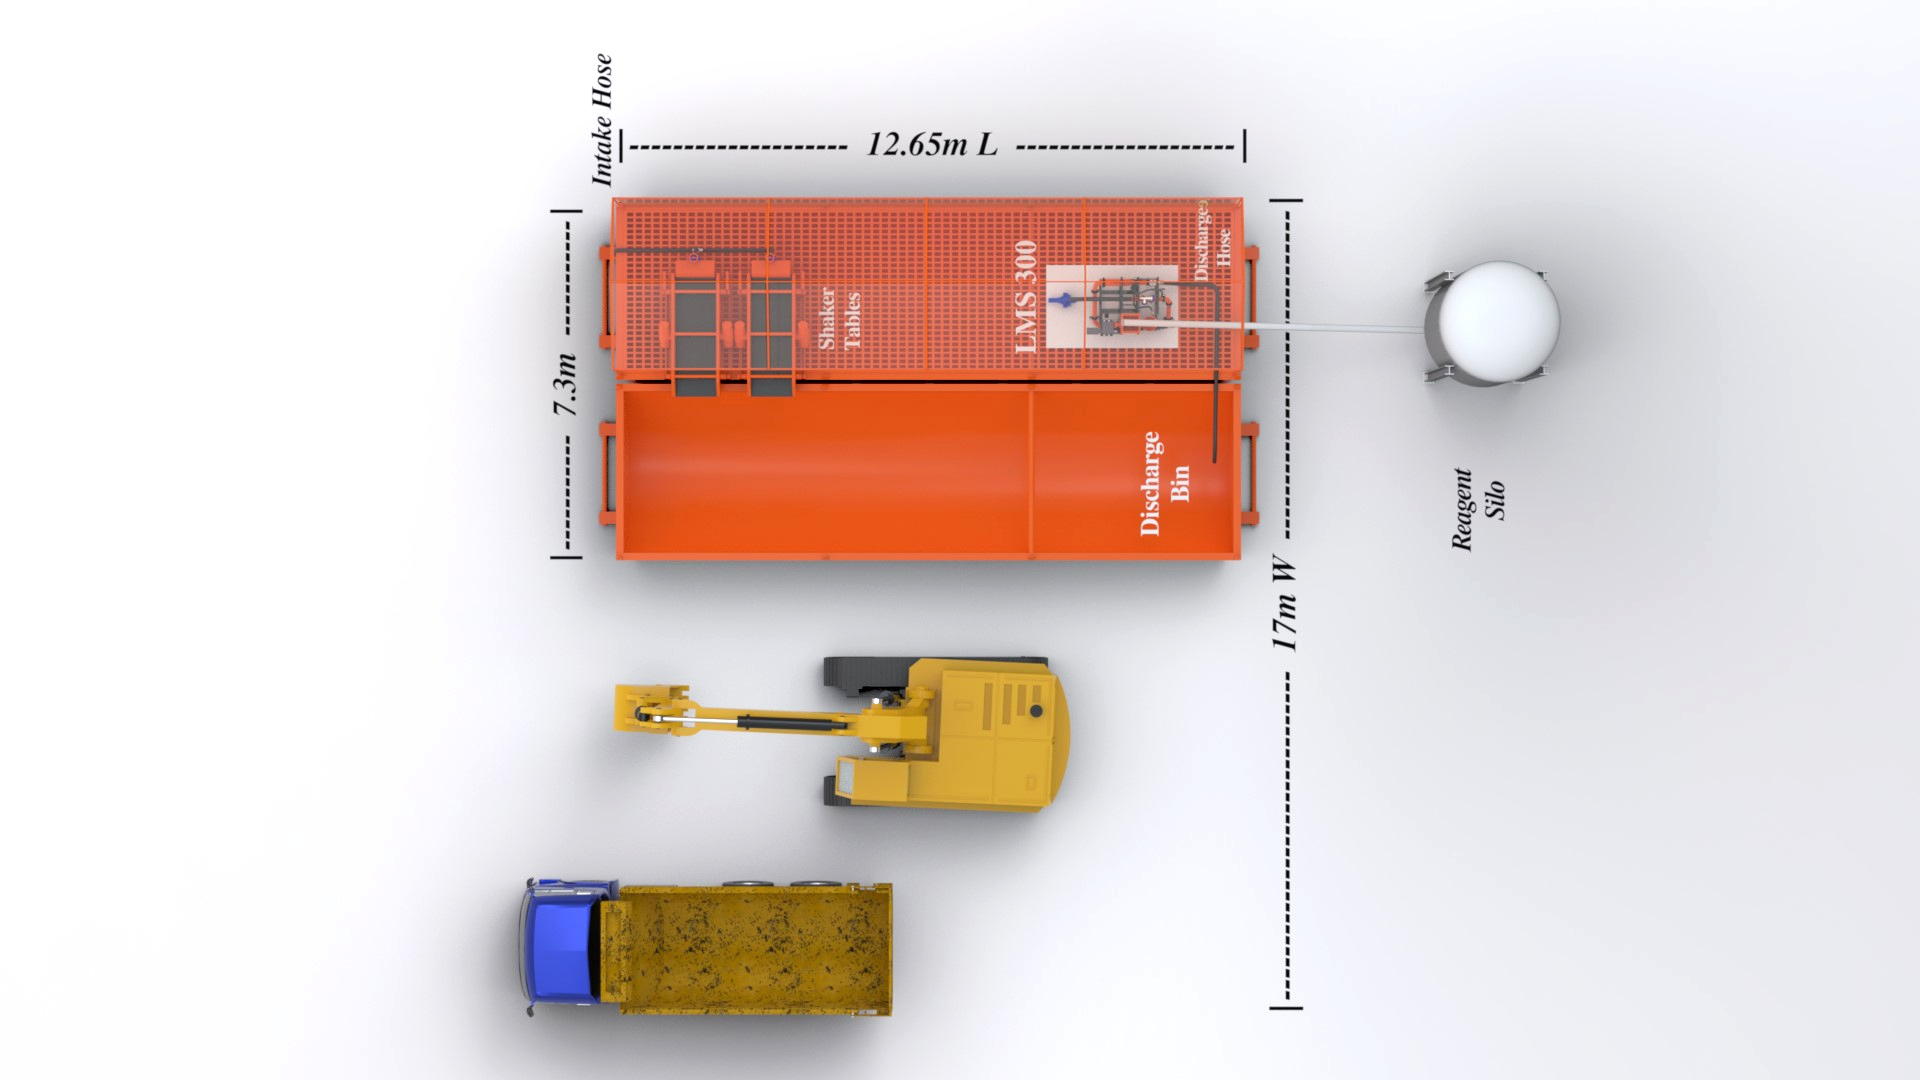 Site Layout - LMS 300 General - Overhead - with labels